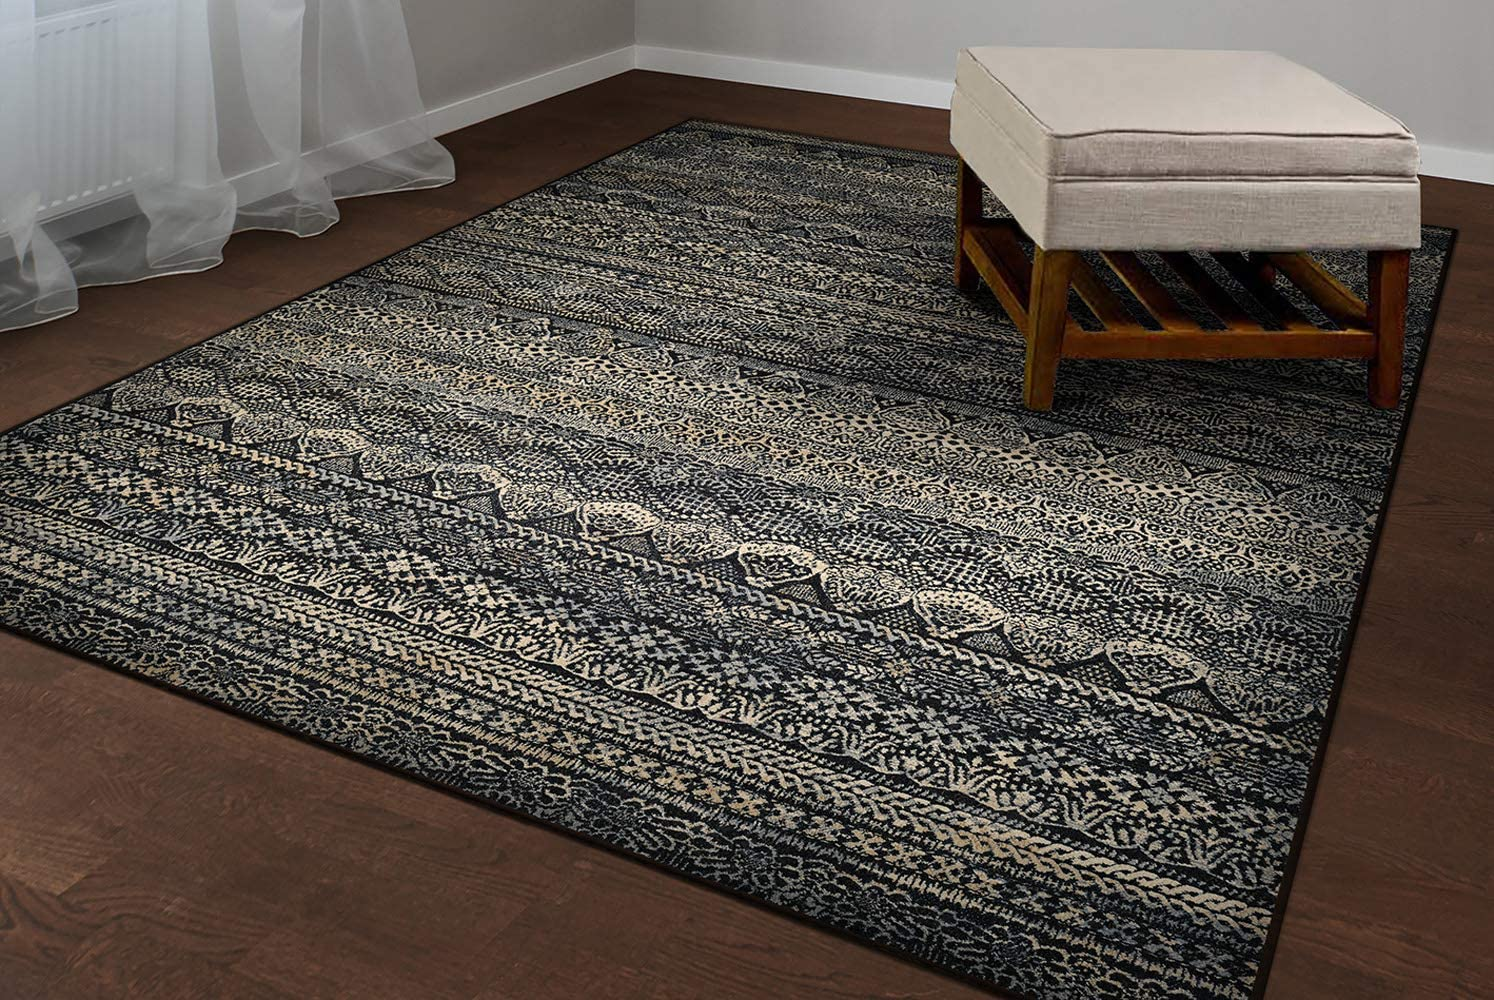 Couristan Easton Capella Area Rug, 5 3 X 7 6 , Black Grey